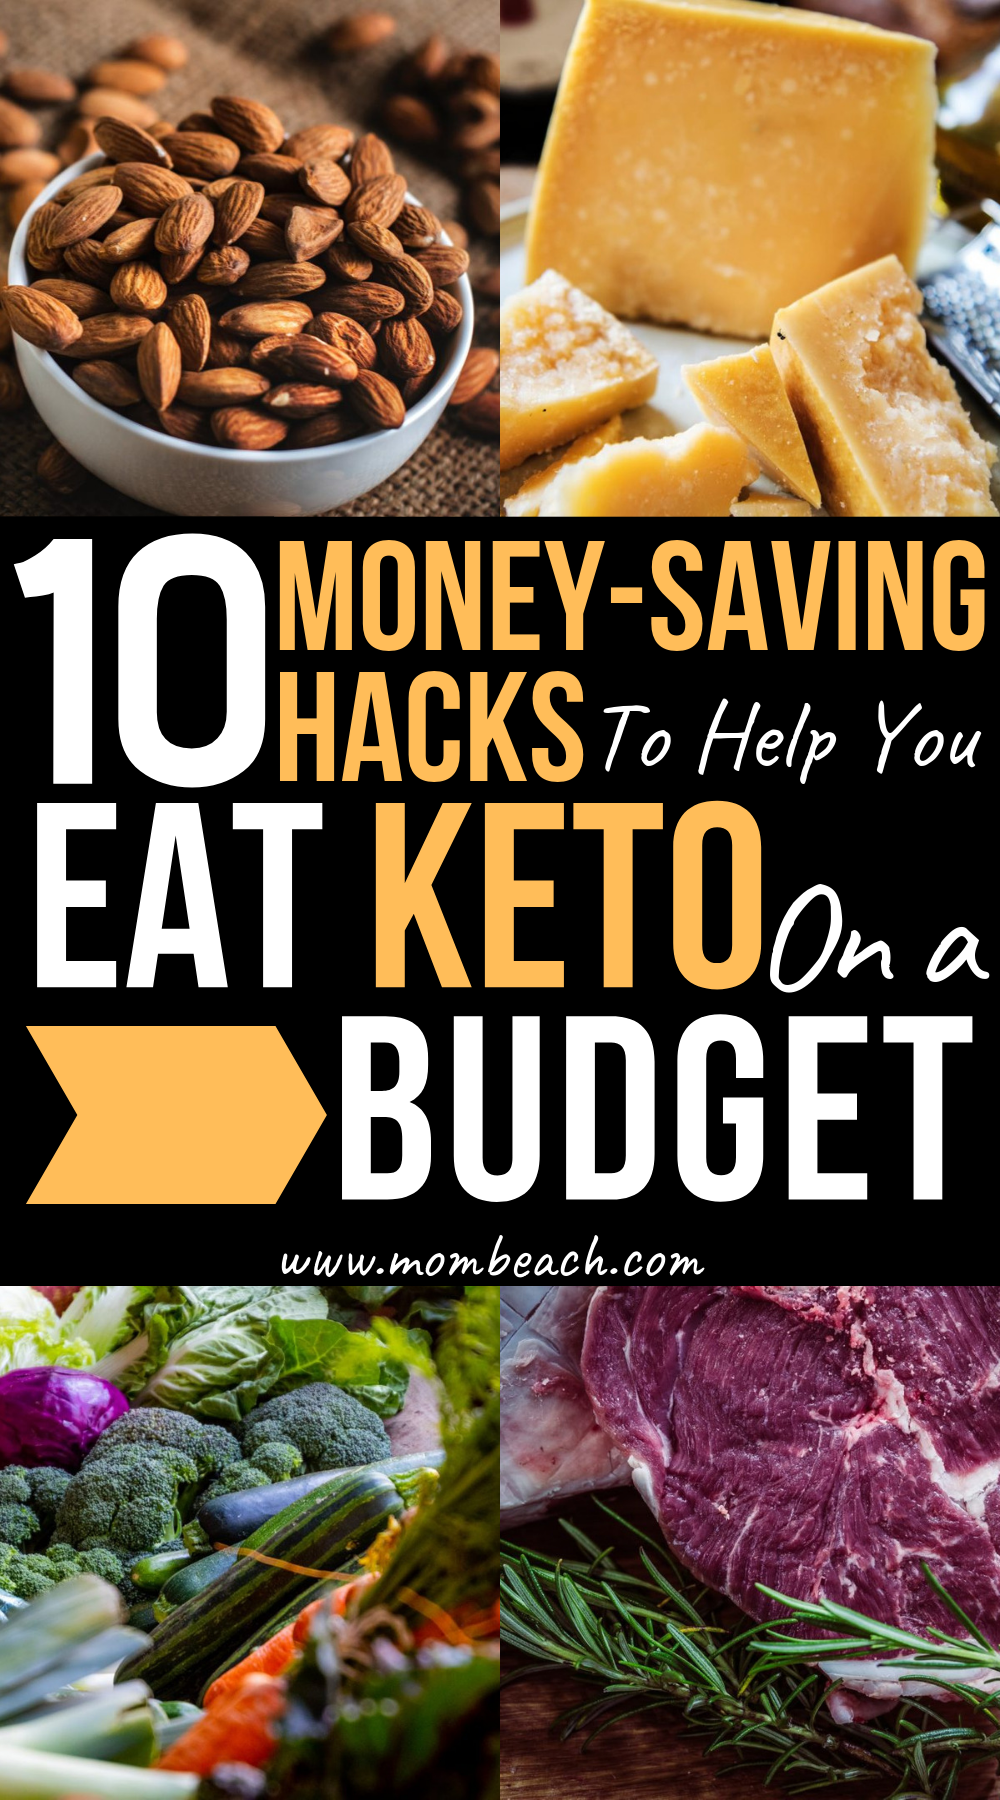 WOW you can save so much money by following these 10 tips for an easy bargain keto diet. It is perfect for beginners and experts alike to follow. You can make cheap and easy meal plans, recipes and more for breakfast, lunch and dinner. You can eat low cost keto desserts and snacks too with this guide. Lose weight with the keto diet and don't empty your savings! #ketodietforbeginners #ketodietonabudget #lowcostketo #ketomealplan #ketodiet #keto #cheapketo #easyketo